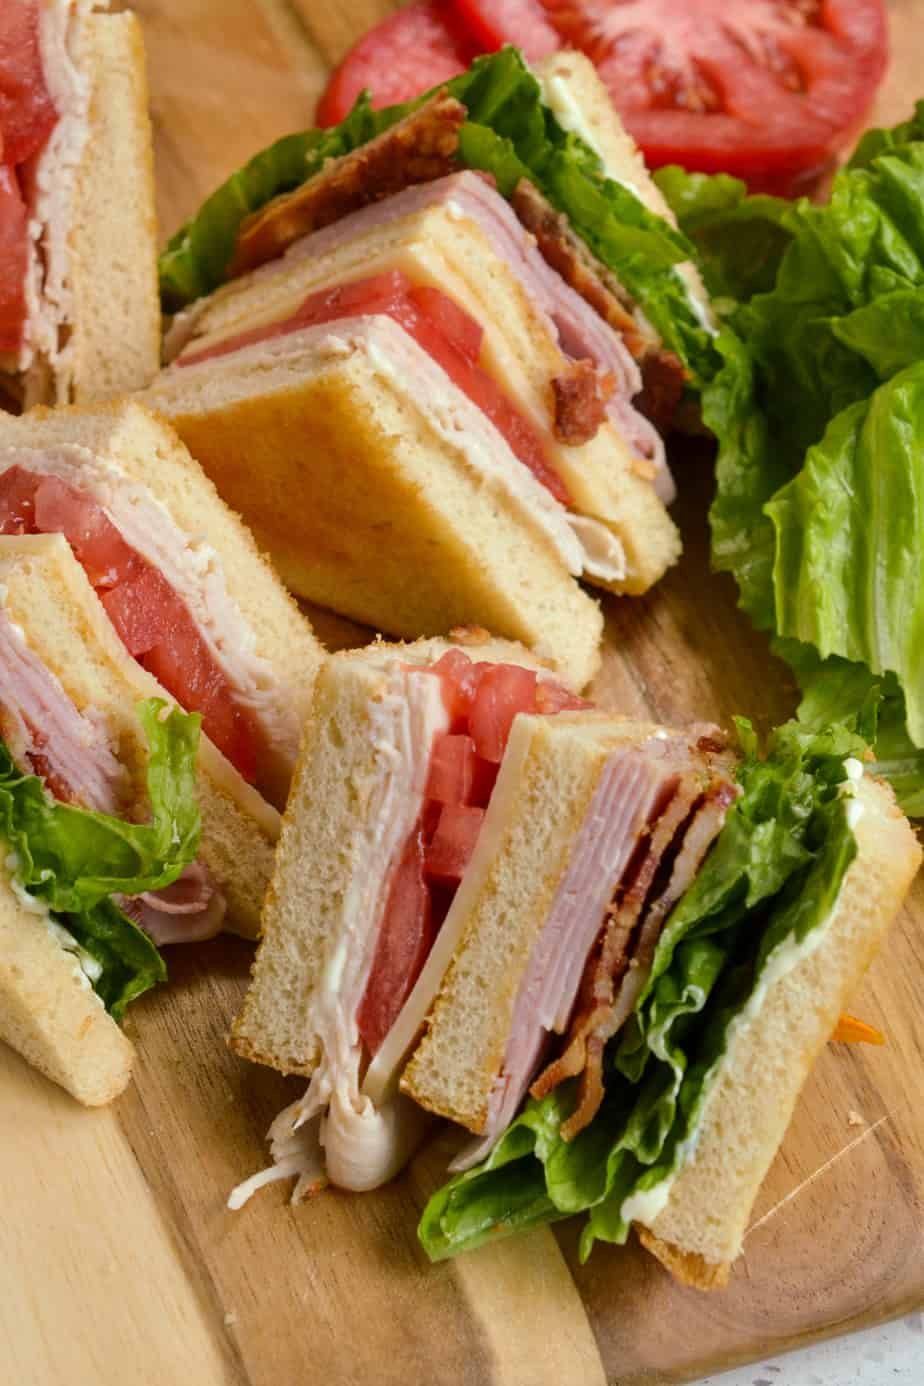 A triple layer classic club sandwich with bacon